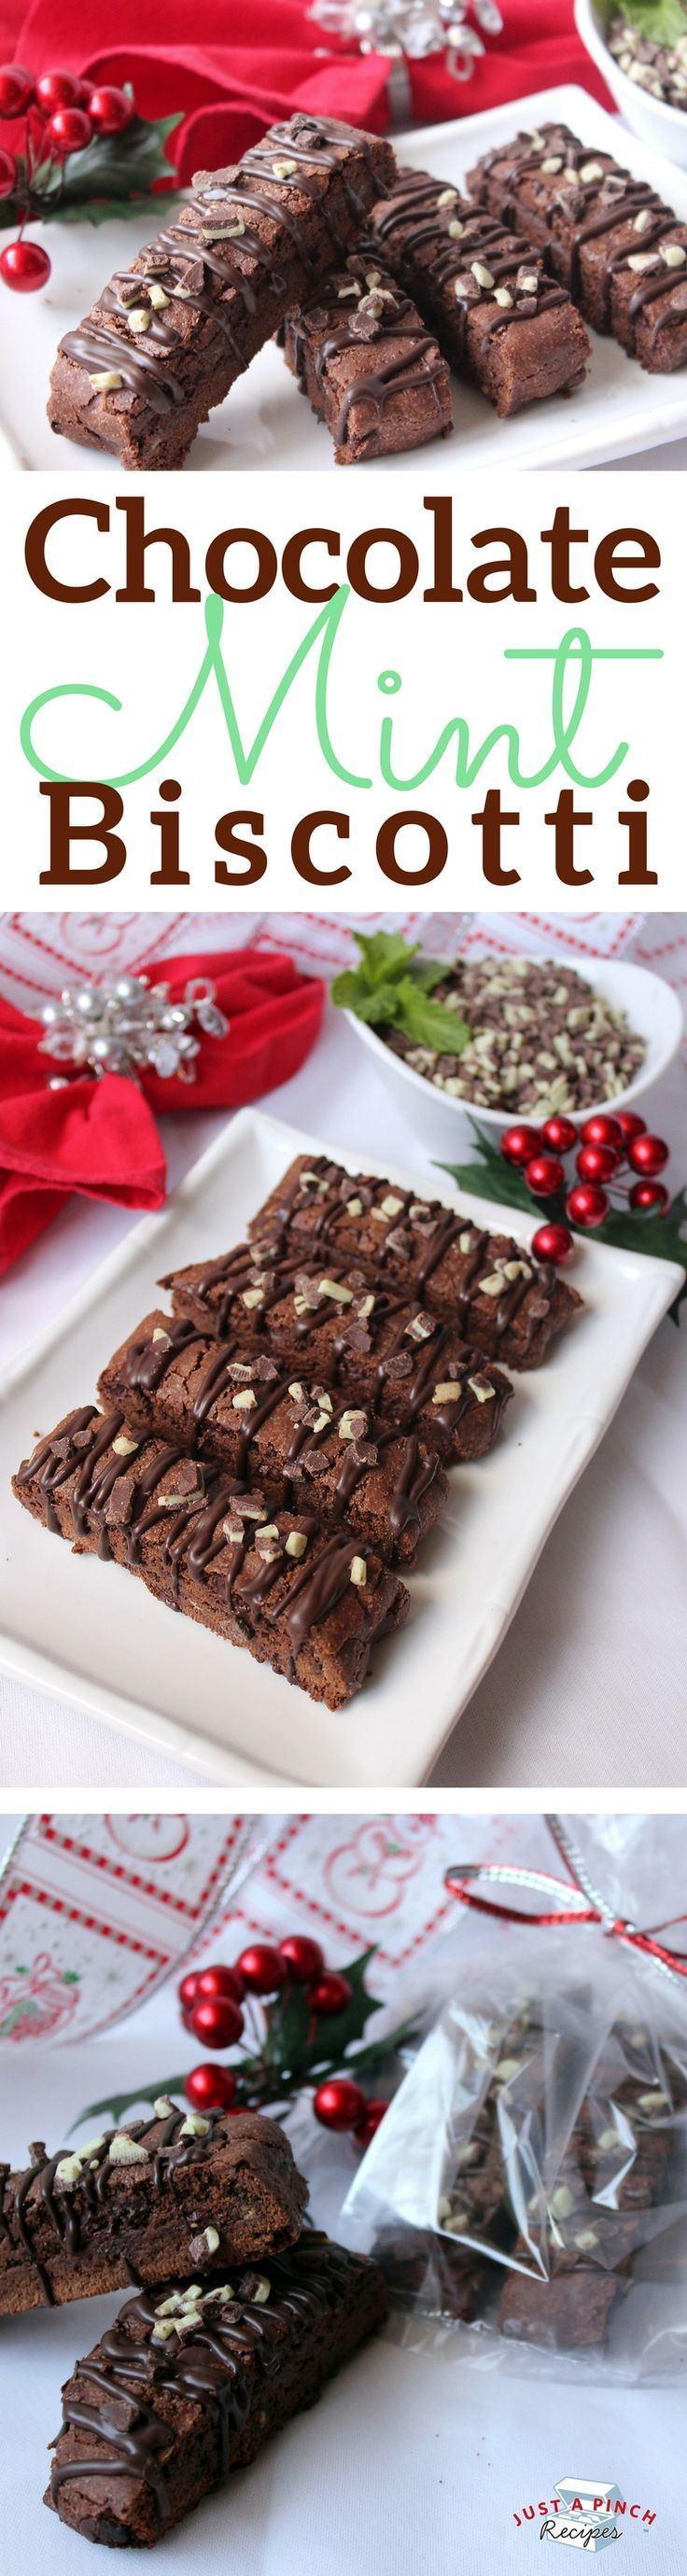 This divine biscotti is full of chocolate flavor and has just enough of the refreshing mint flavor to give them a holiday flair. I love that the actual biscotti dough has chocolate/mint flavor and there are the chocolate chips and Andes candies to give an extra punch of flavor.